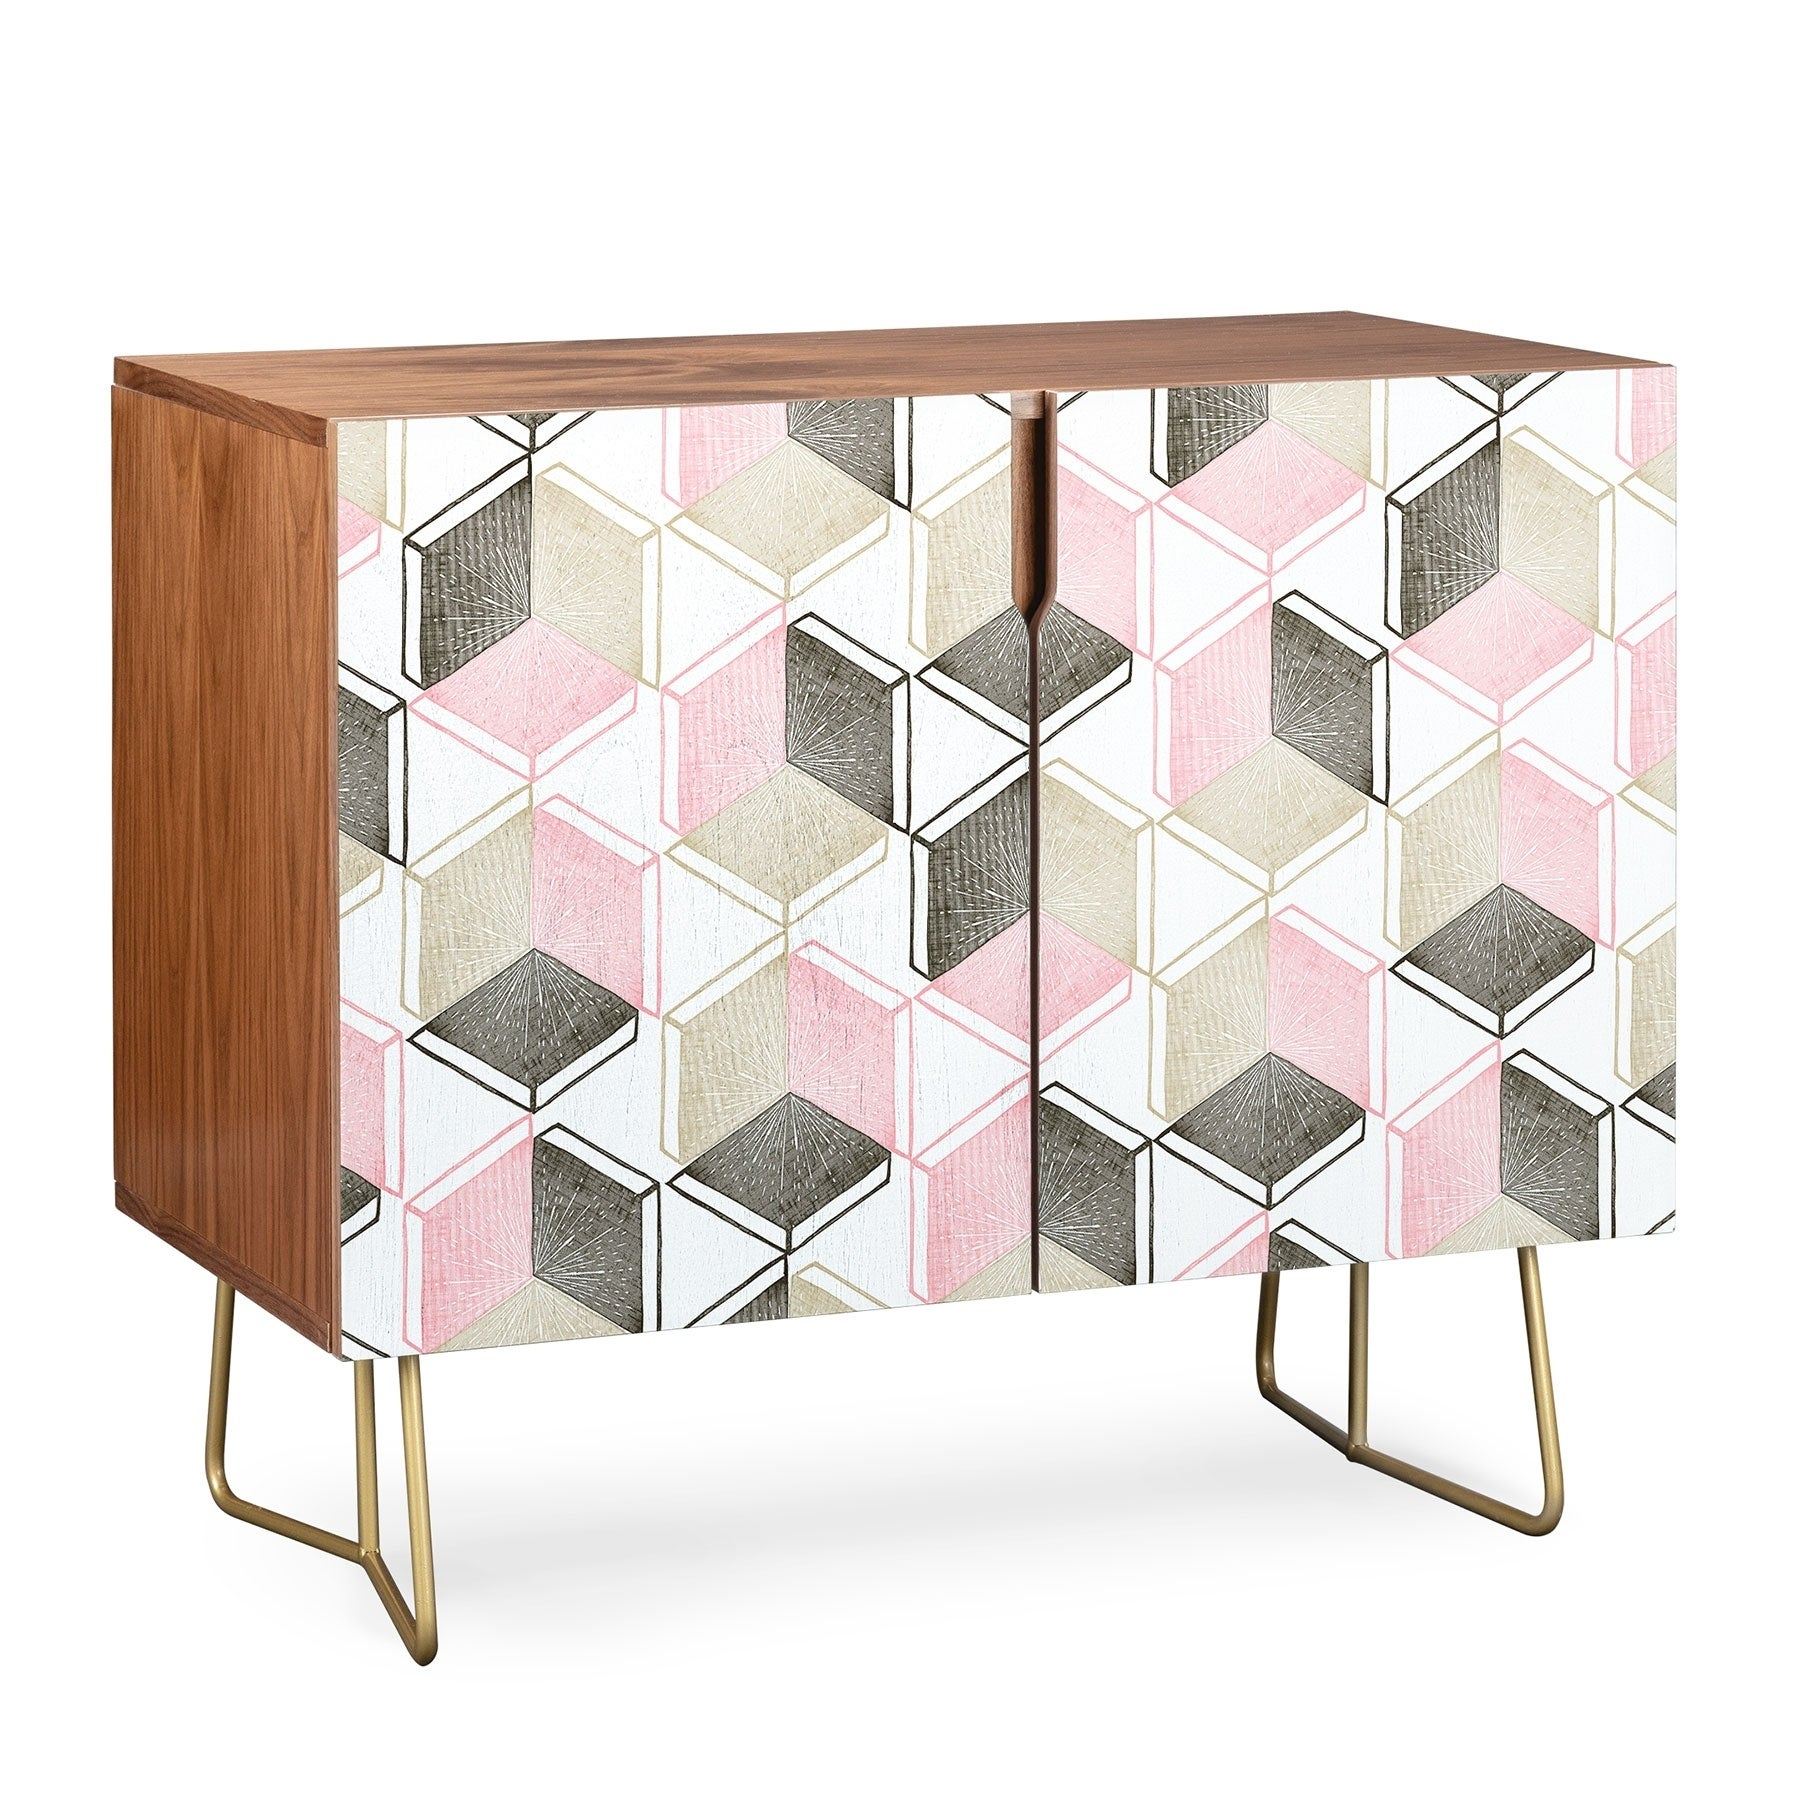 Deny Designs Geometric Shapes Credenza (Birch Or Walnut, 2 Leg Options) Within Geometric Shapes Credenzas (Gallery 5 of 30)